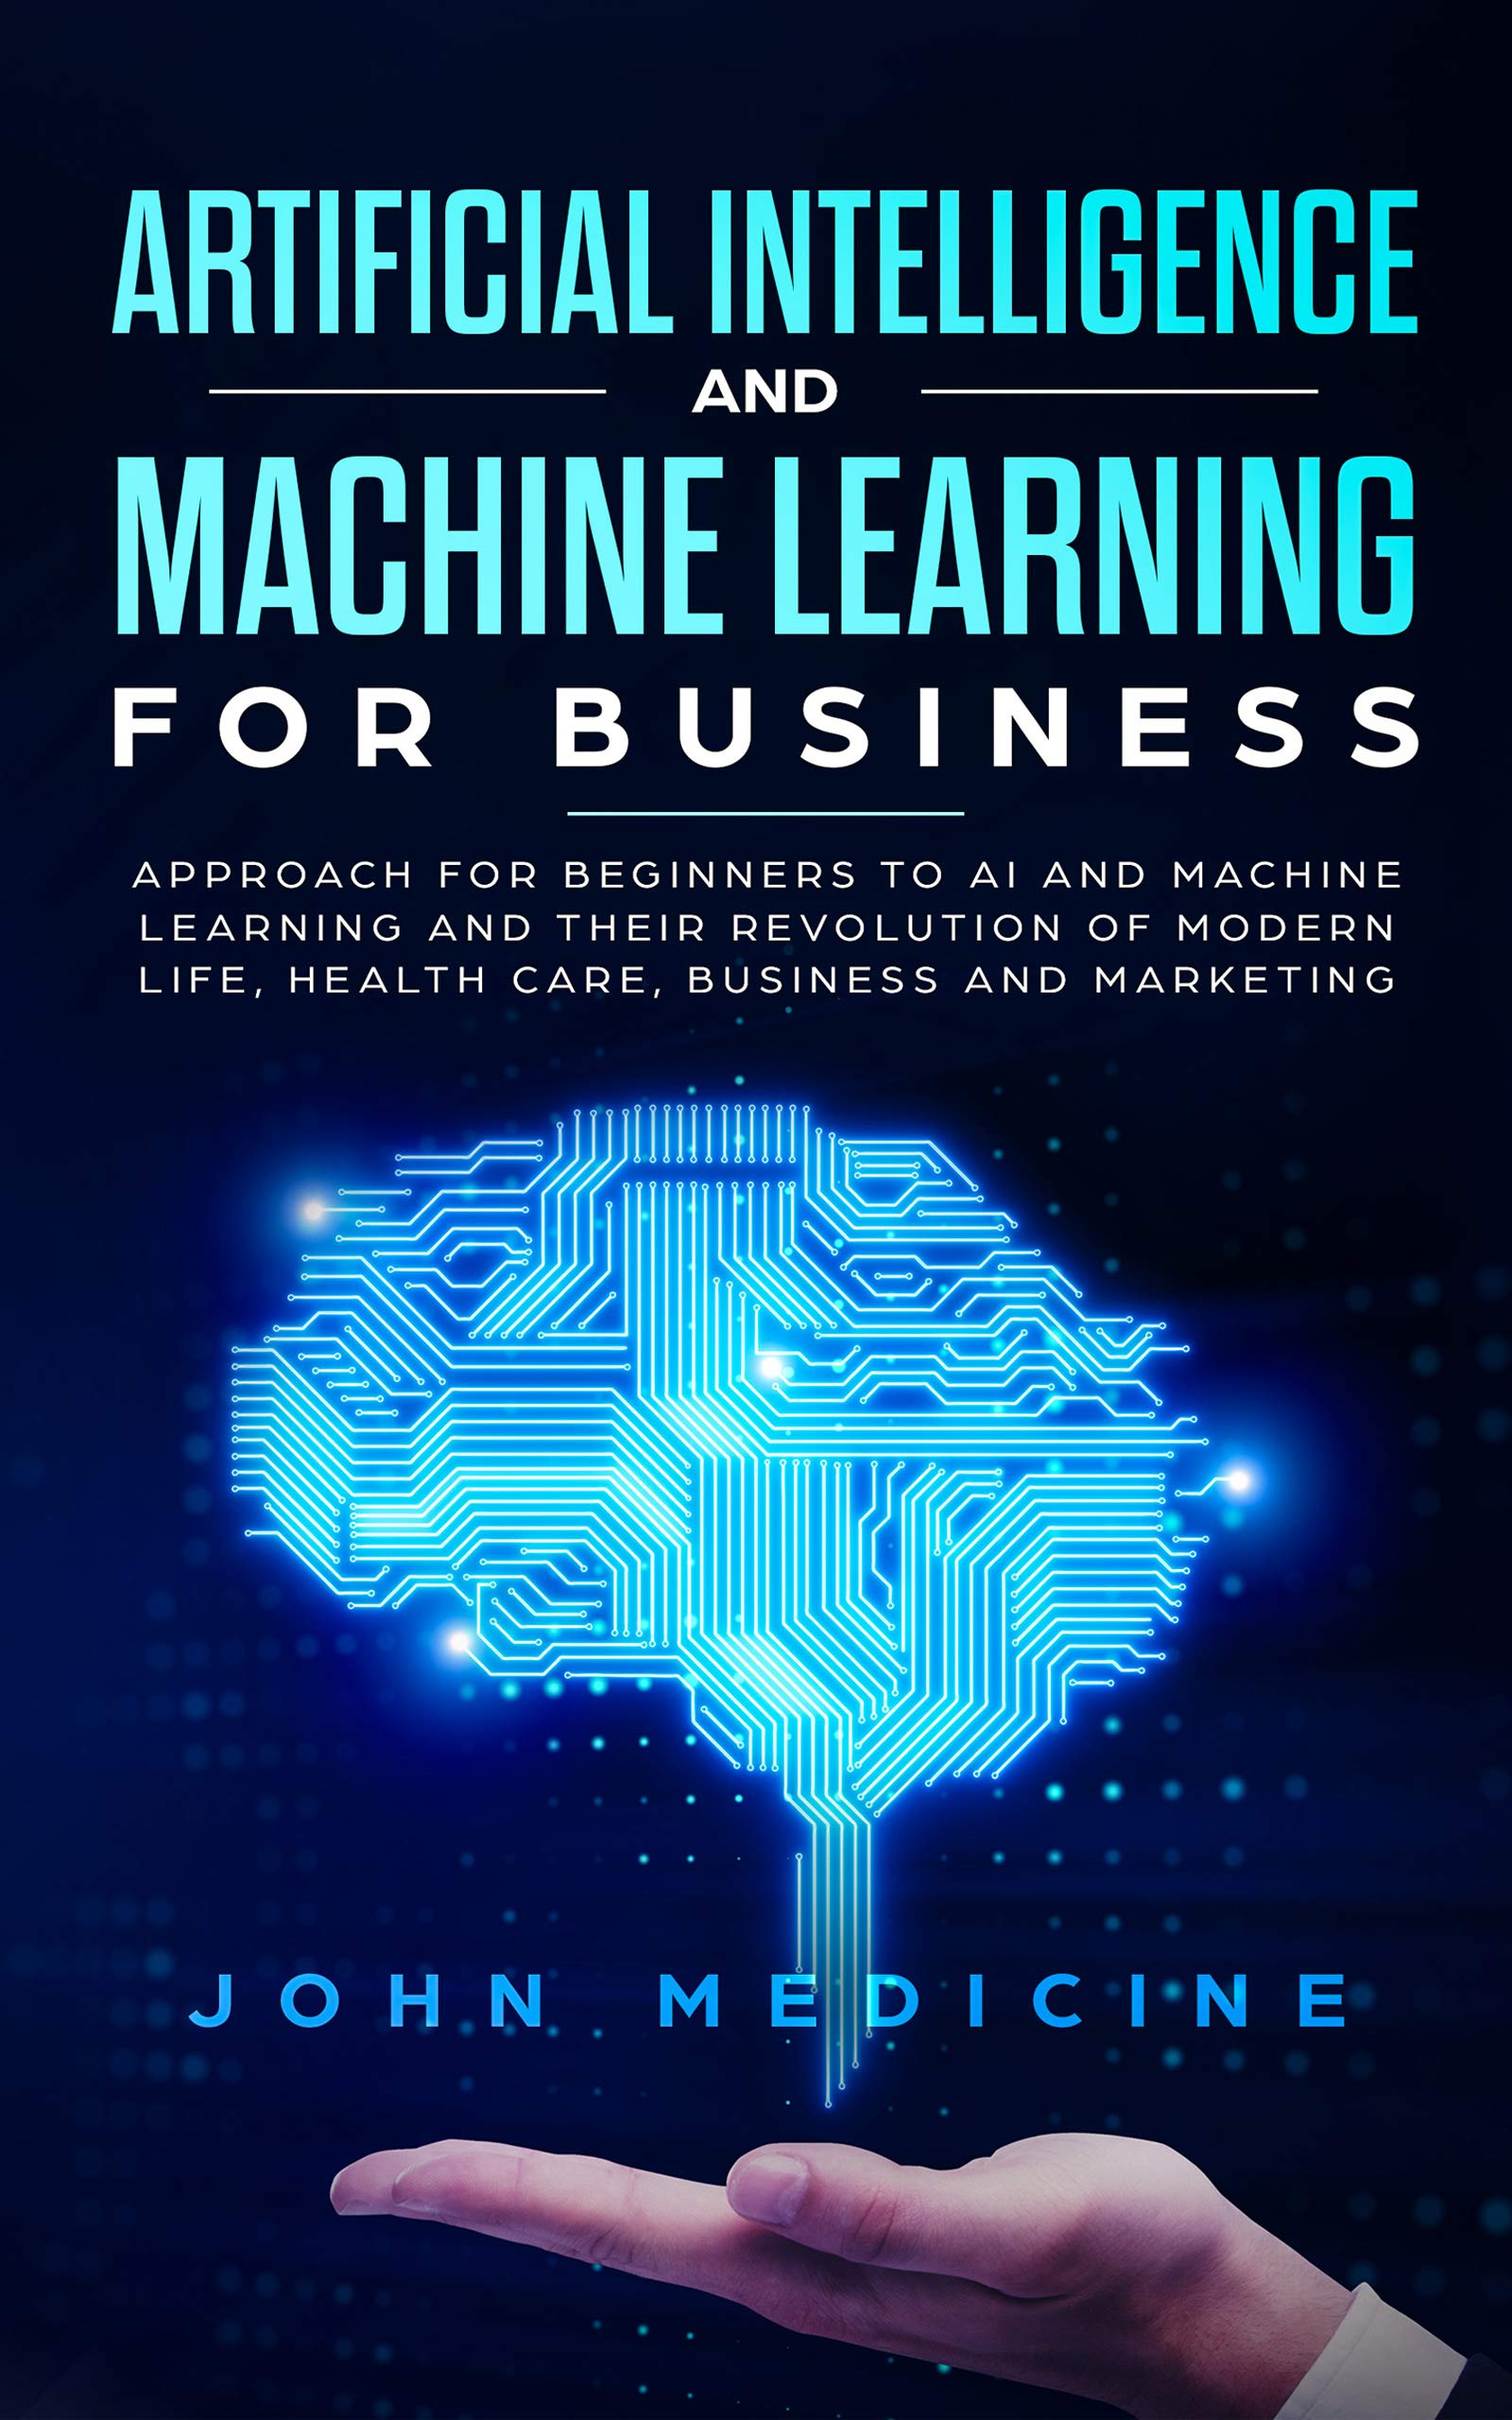 Artificial Intelligence And Machine Learning For Business  Approach For Beginners To AI And Machine Learning And Their Revolution Of Modern Life Health Care Business And Marketing  English Edition